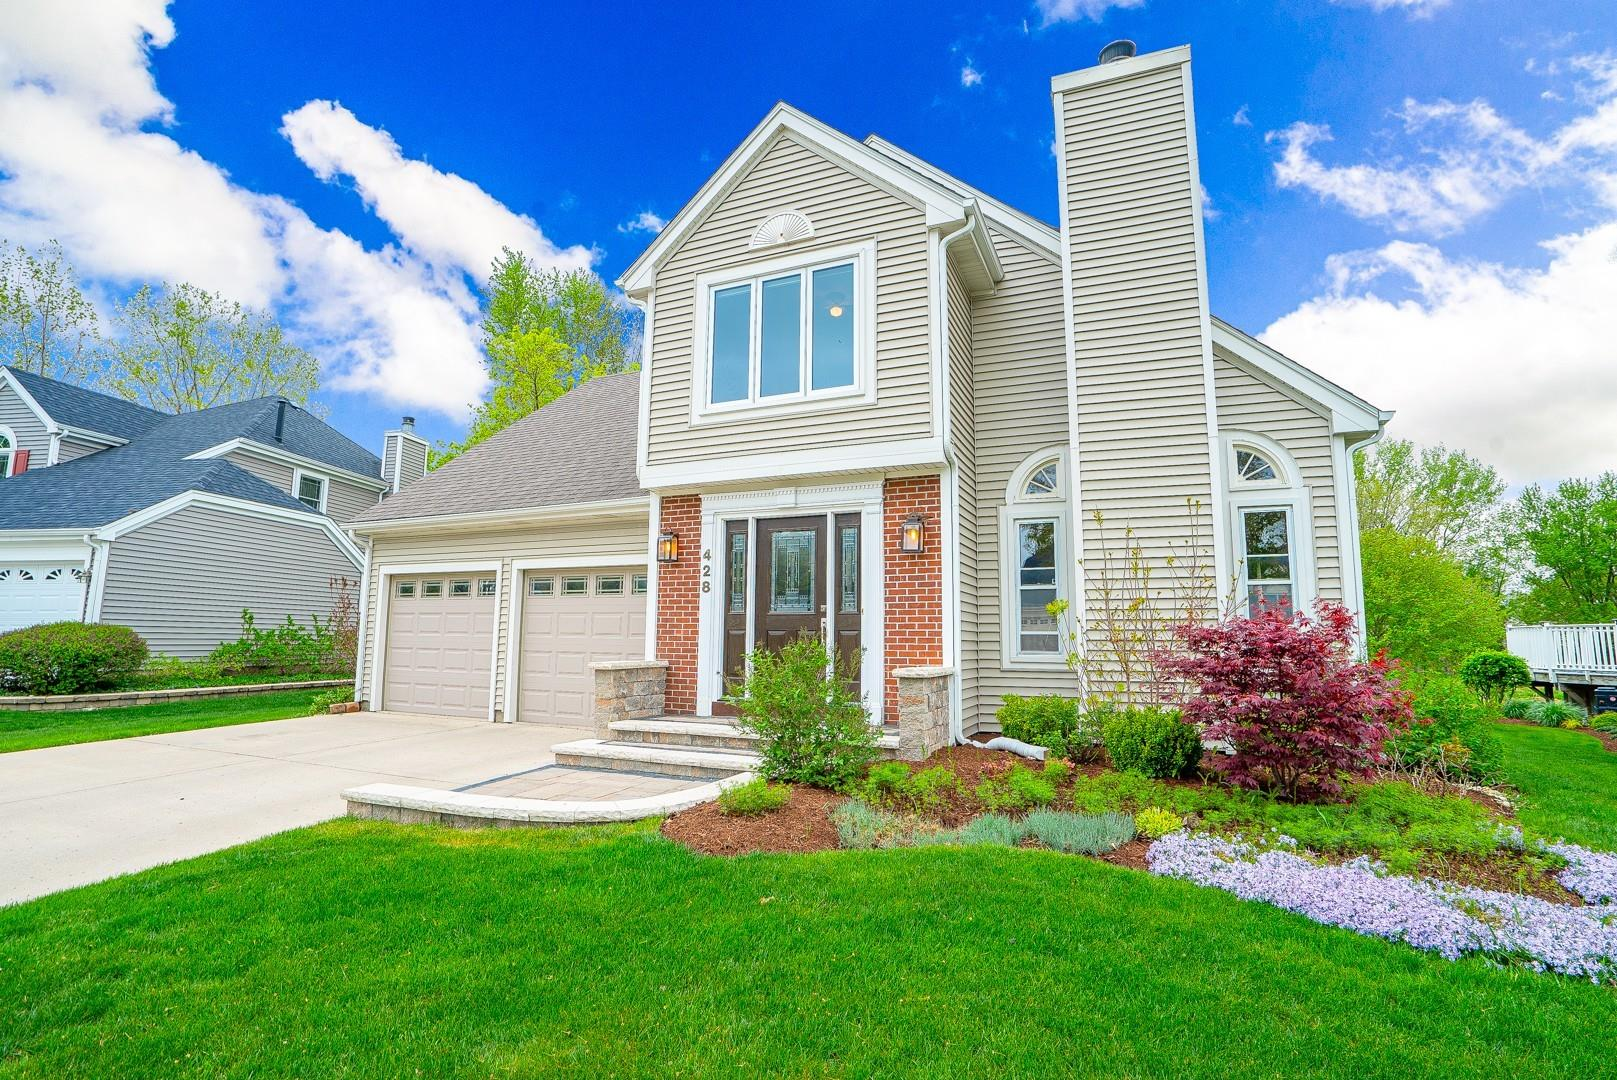 428 New York Lane, Elk Grove Village, IL 60007 - #: 11086295